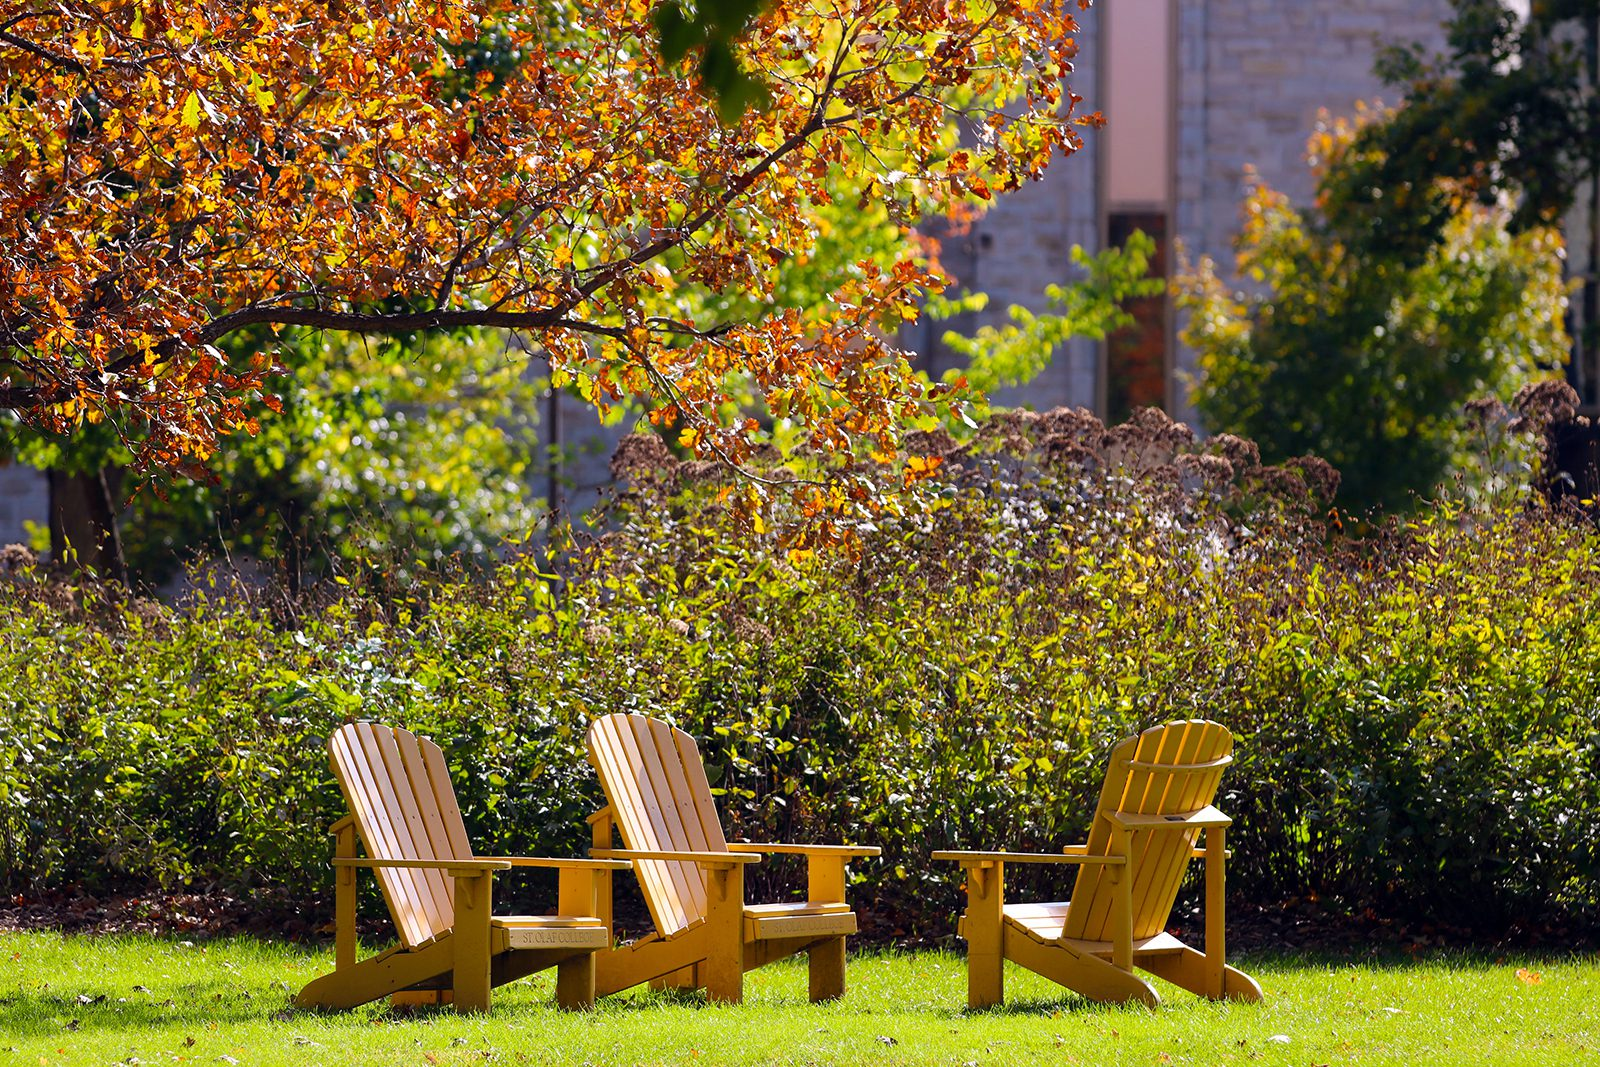 The signature St. Olaf Adirondack chairs on a warm fall day.